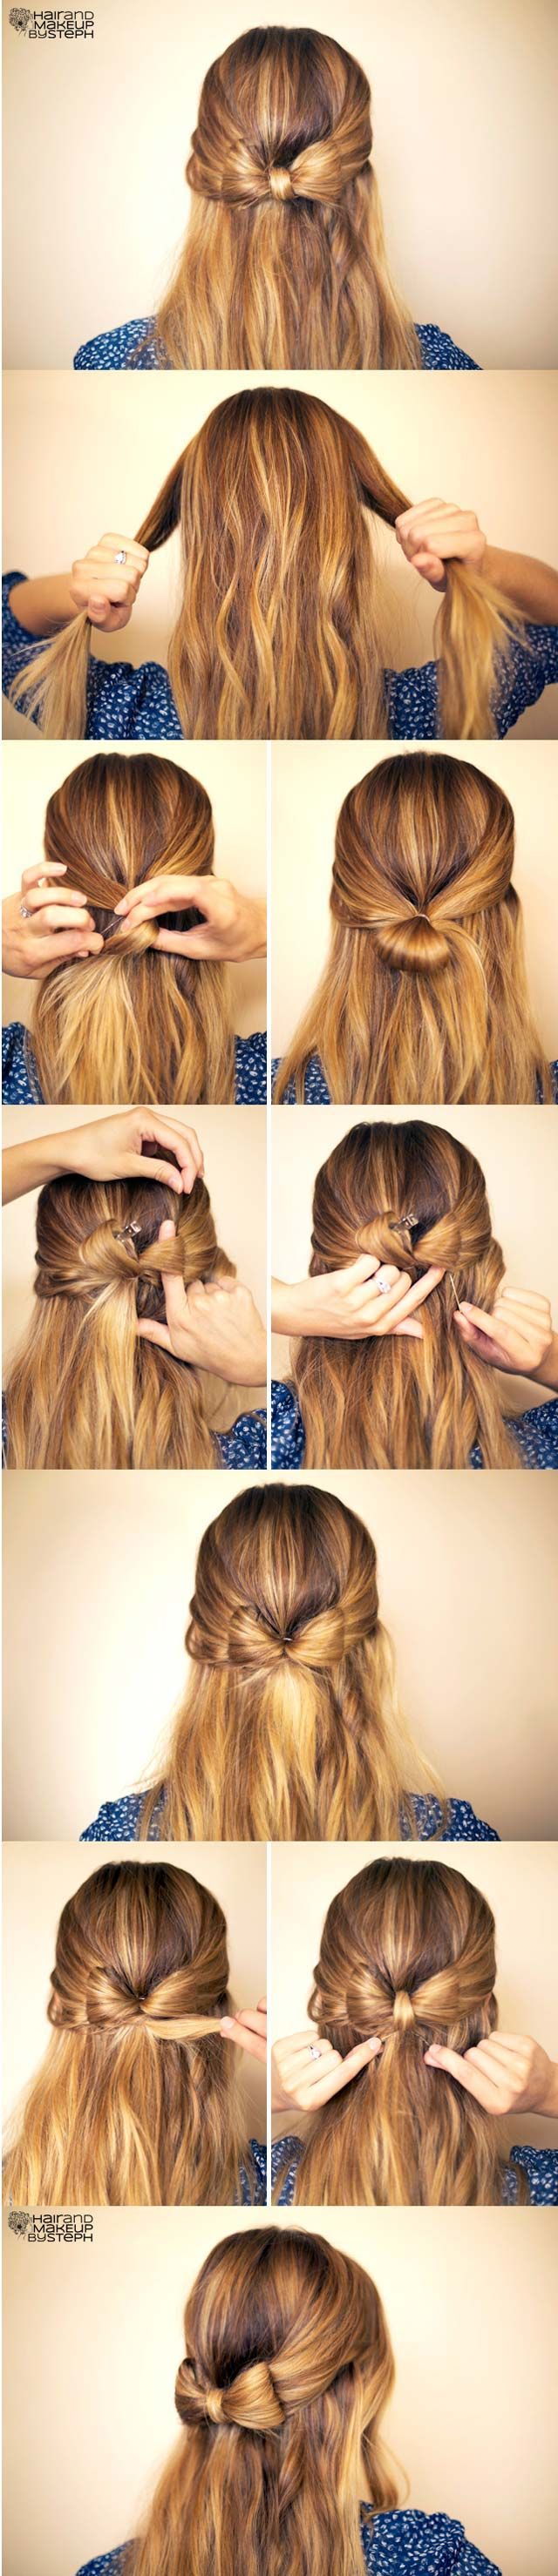 DIY! Your Step-by-Step for the Hair Bow http://www.fashiondivade...